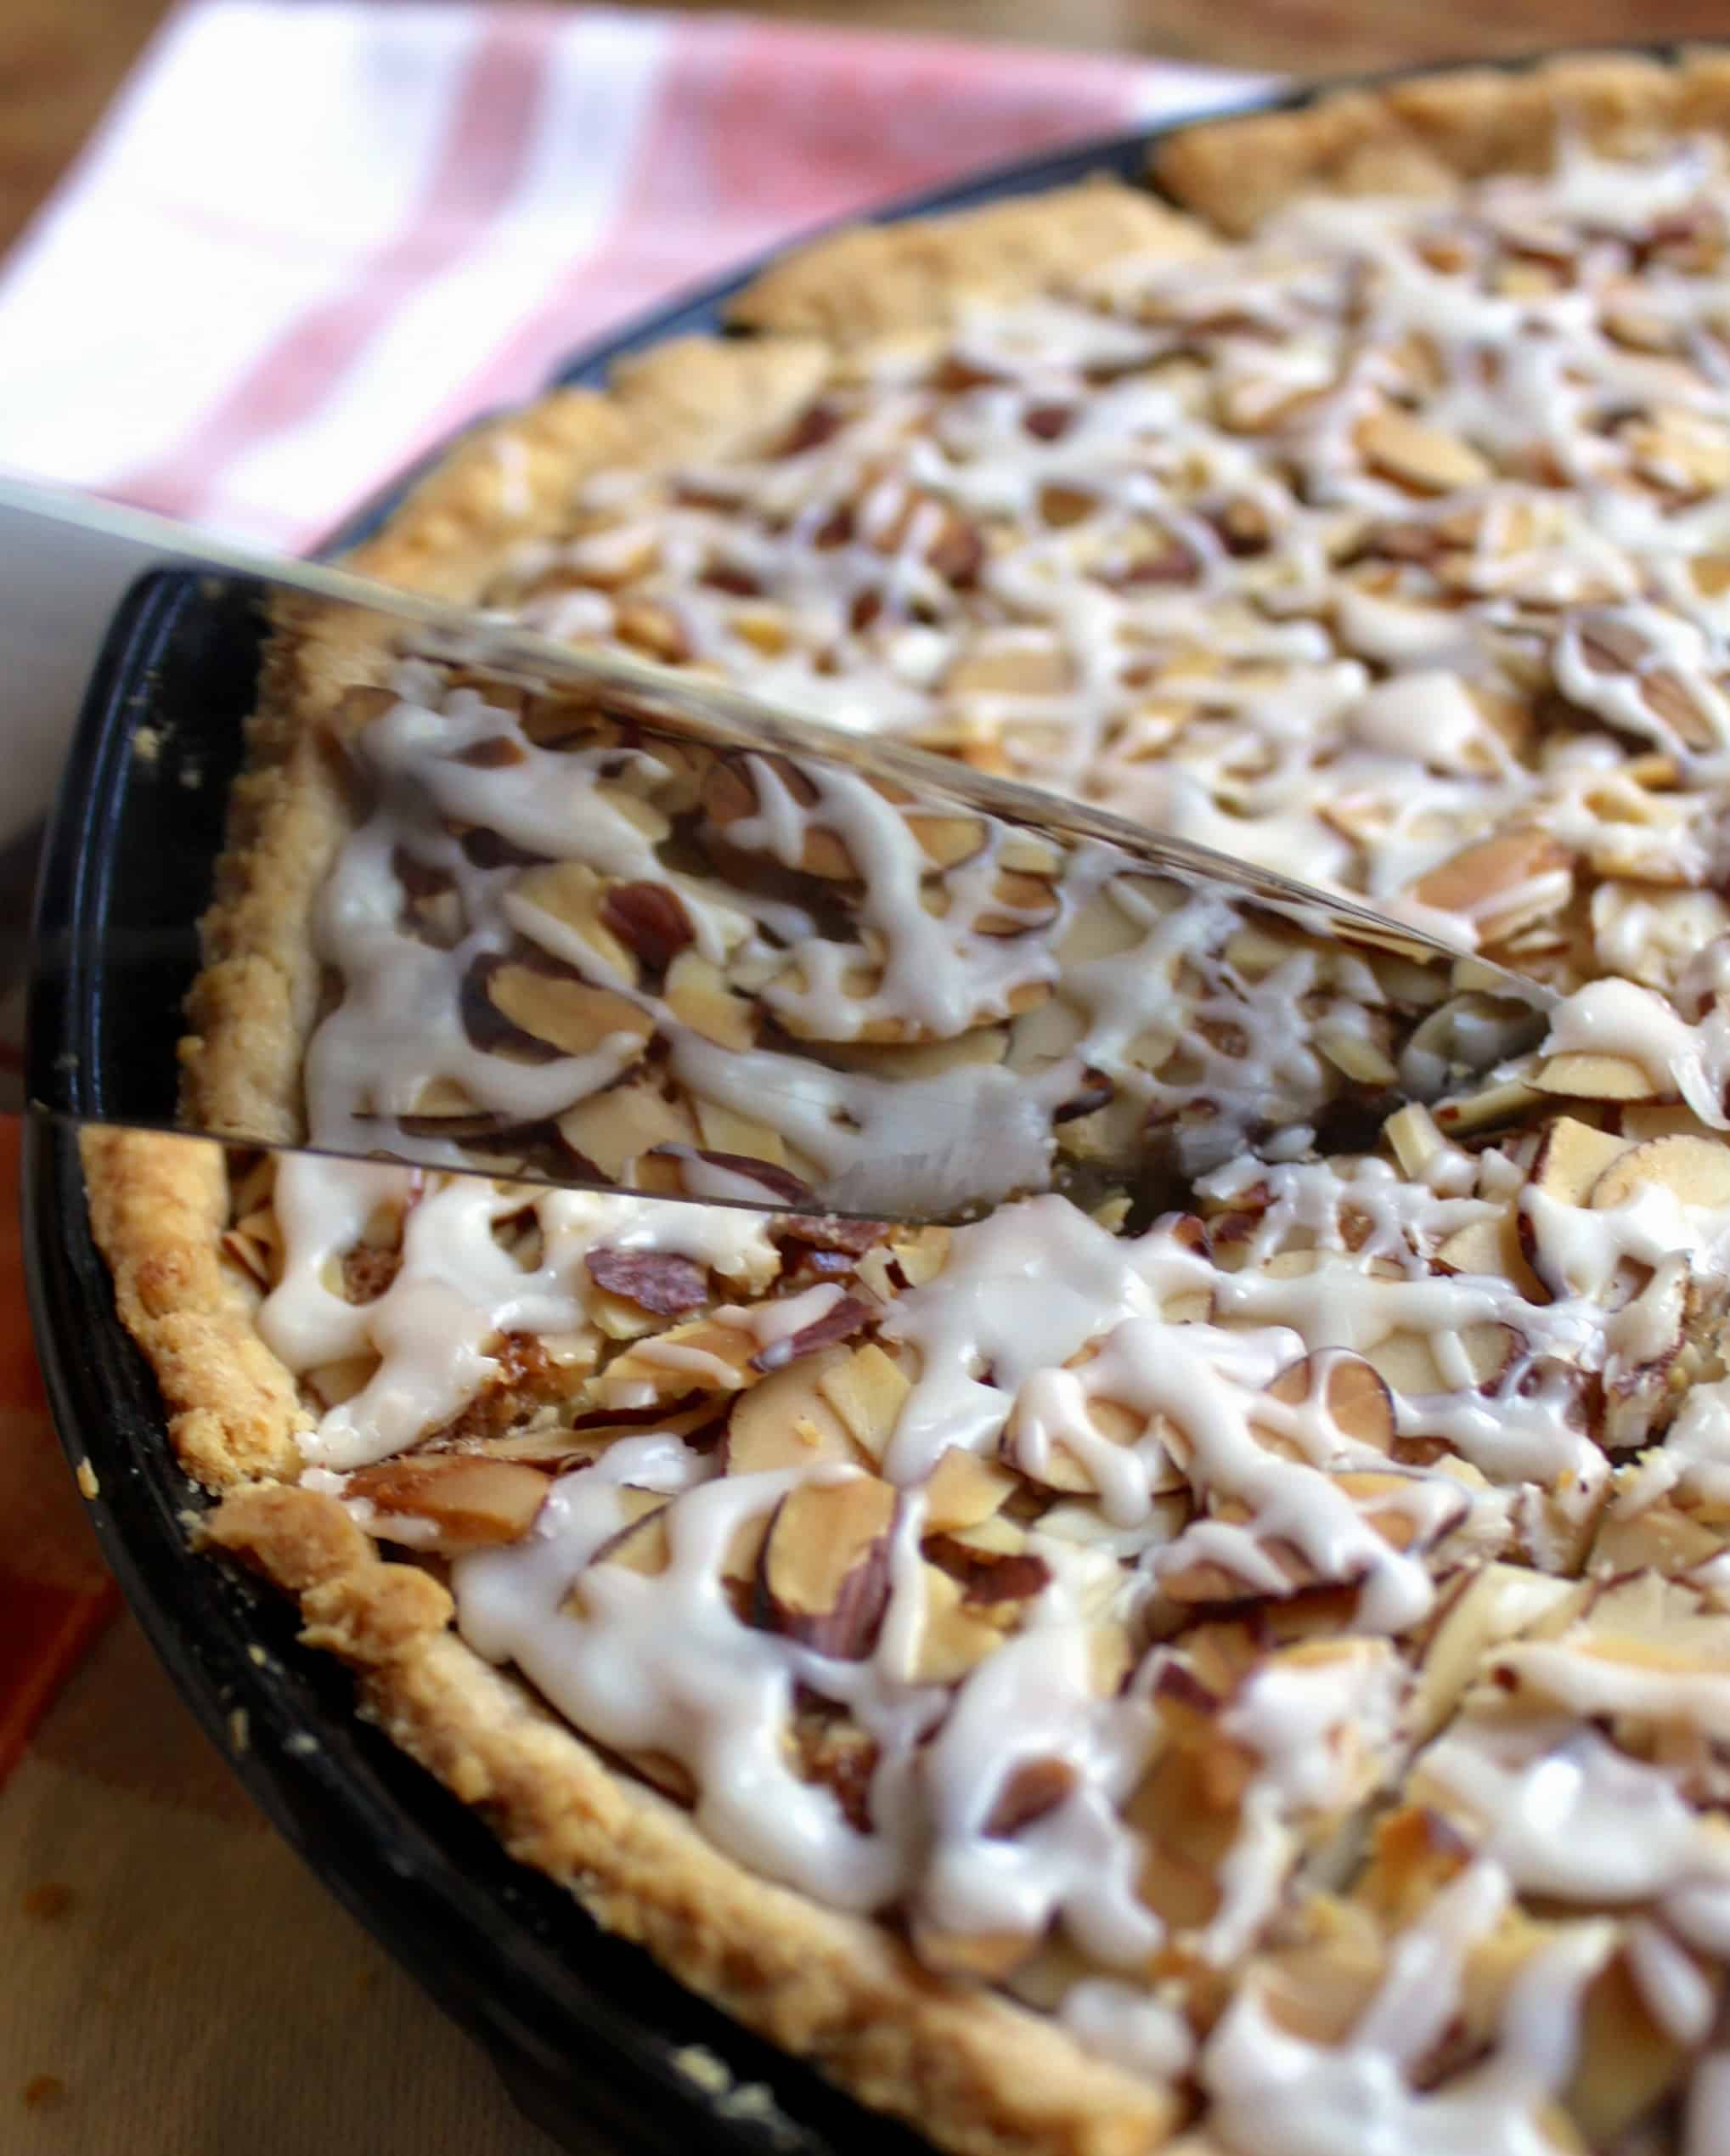 Cutting Mary Berry's Bakewell tart